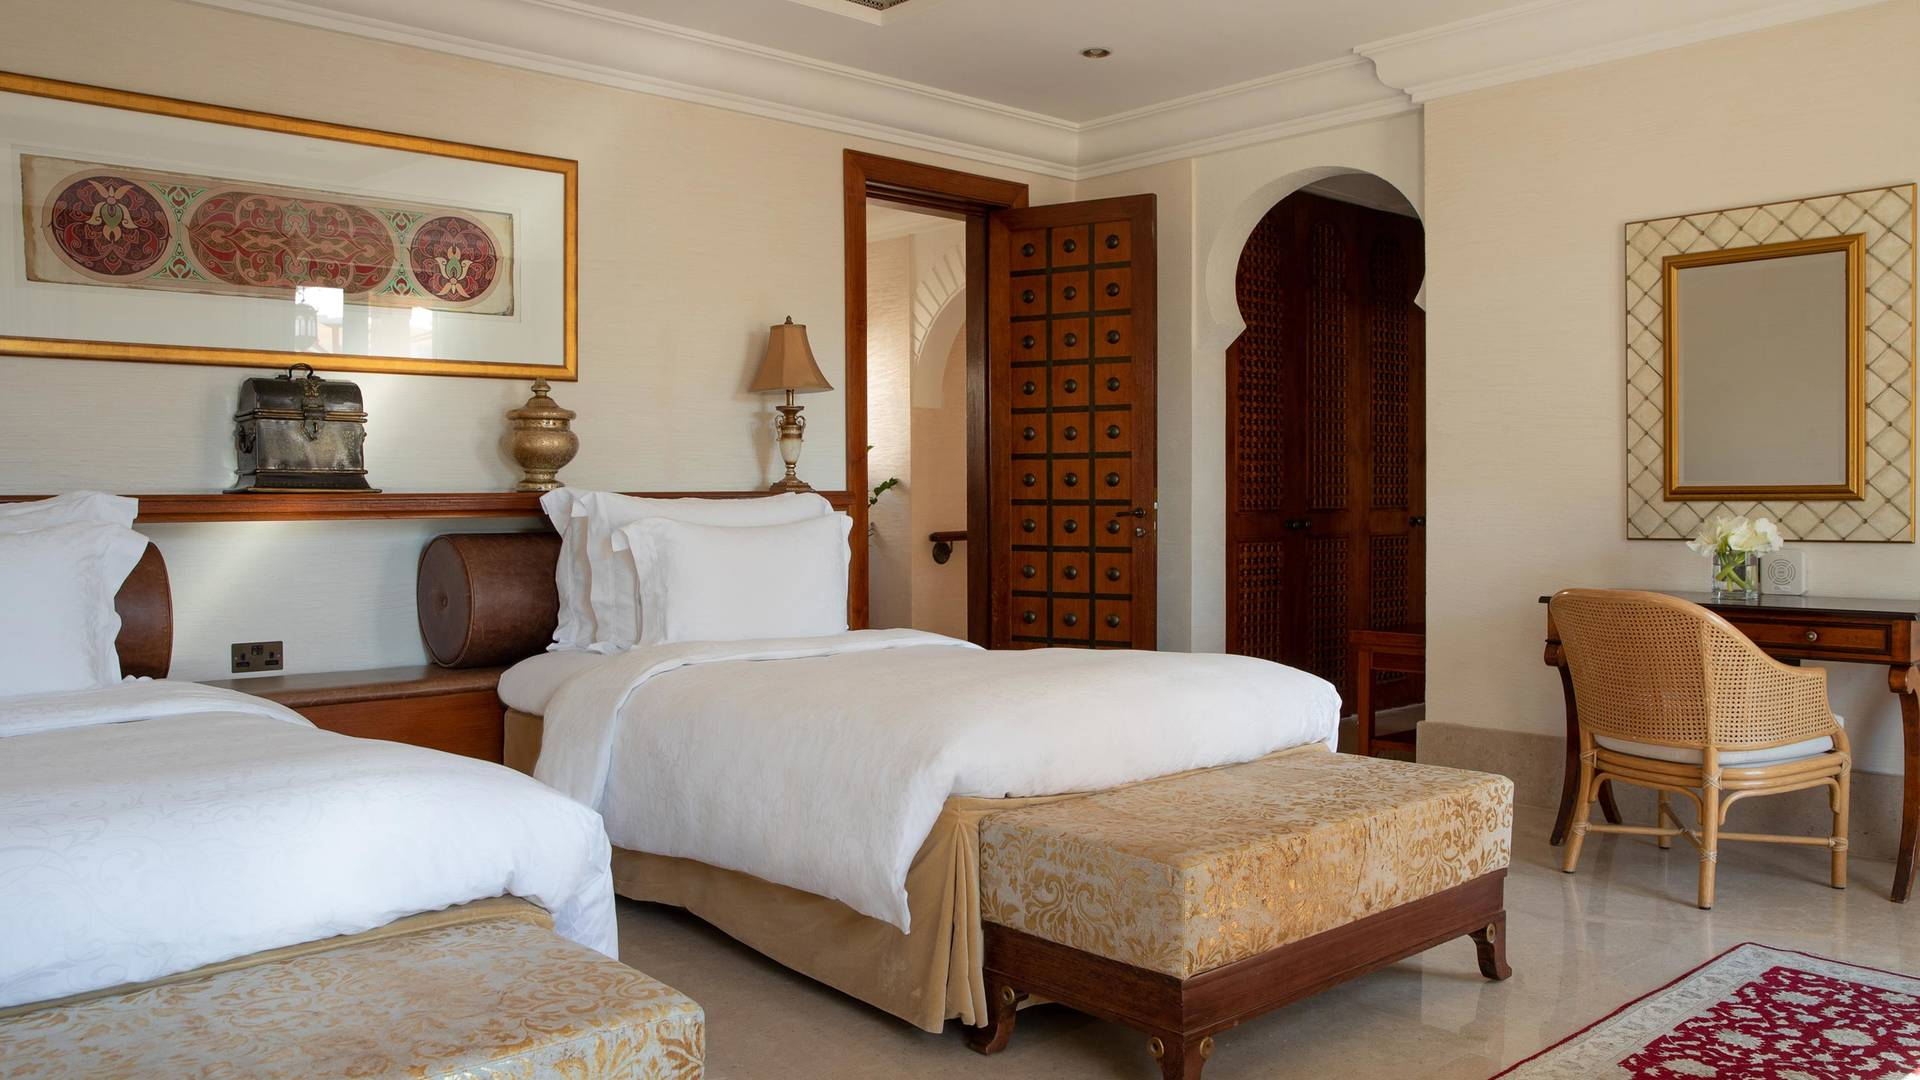 Jumeirah Dar Al Masyaf Malakiya three bedroom villa bedroom 2_16-9